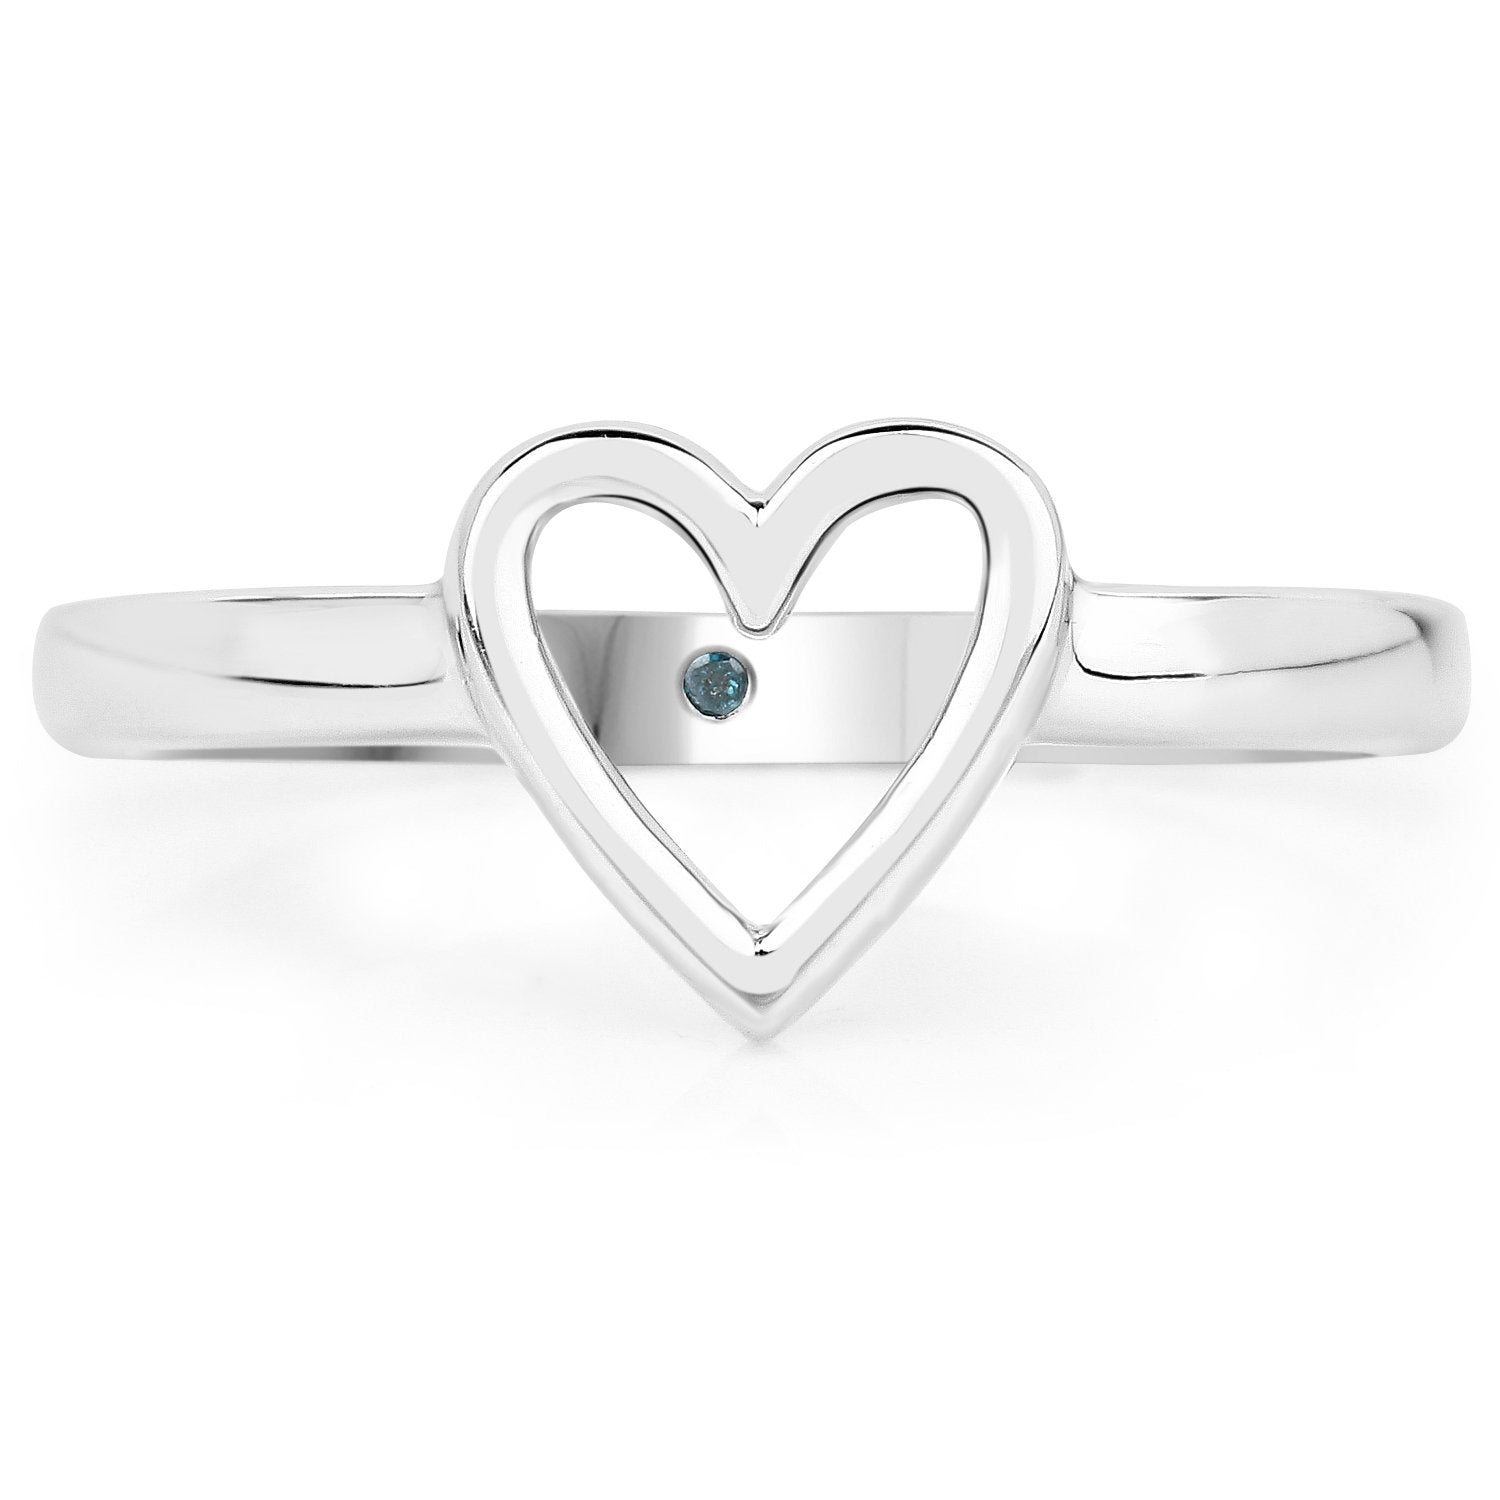 LoveHuang 0.01 Carats Genuine Blue Diamond (I-J, I2-I3) Heart Ring Solid .925 Sterling Silver With Rhodium Plating